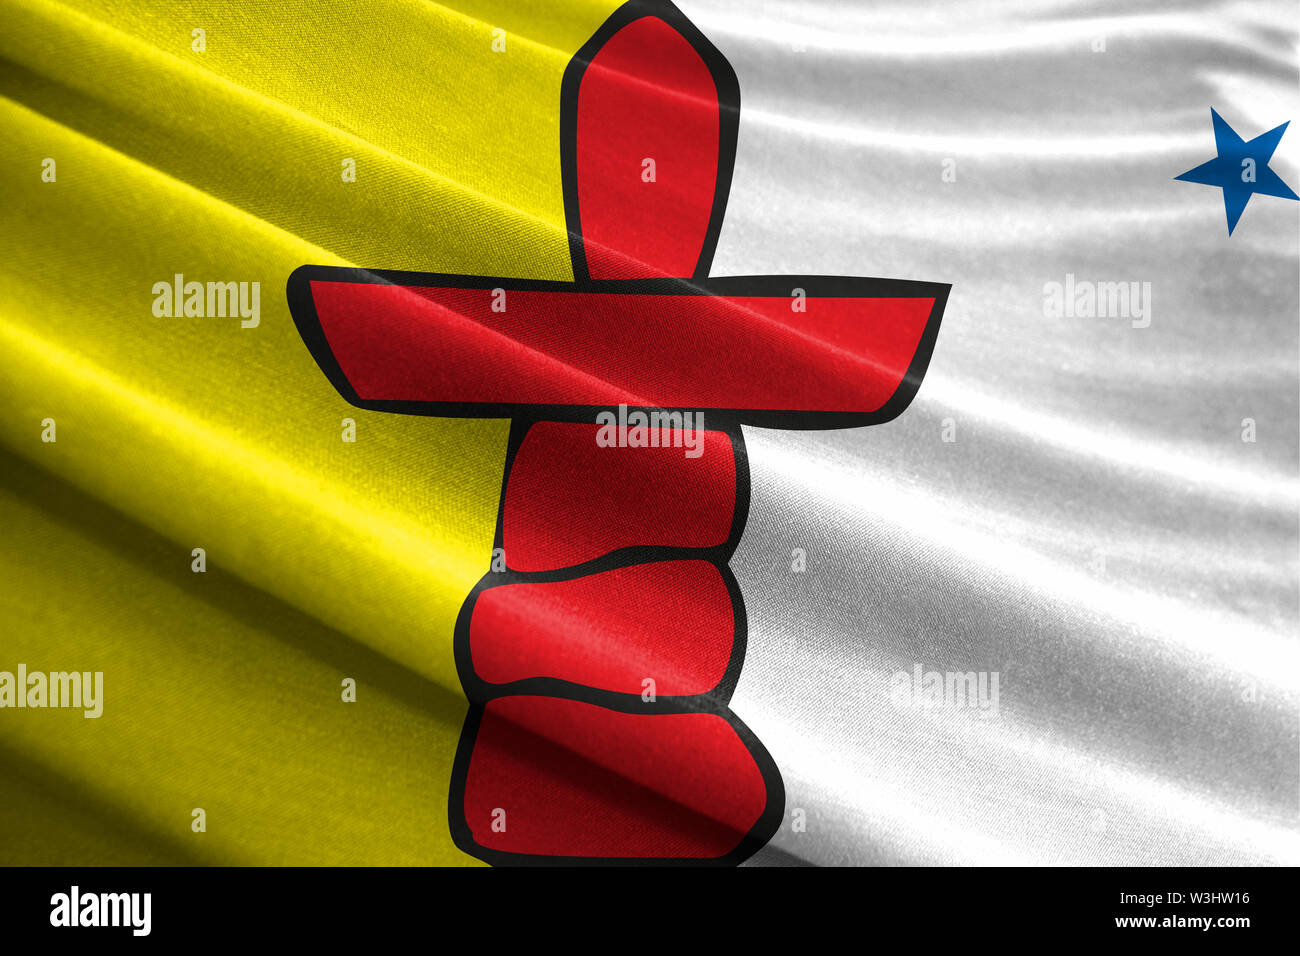 Realistic flag of Nunavut on the wavy surface of fabric - Stock Image